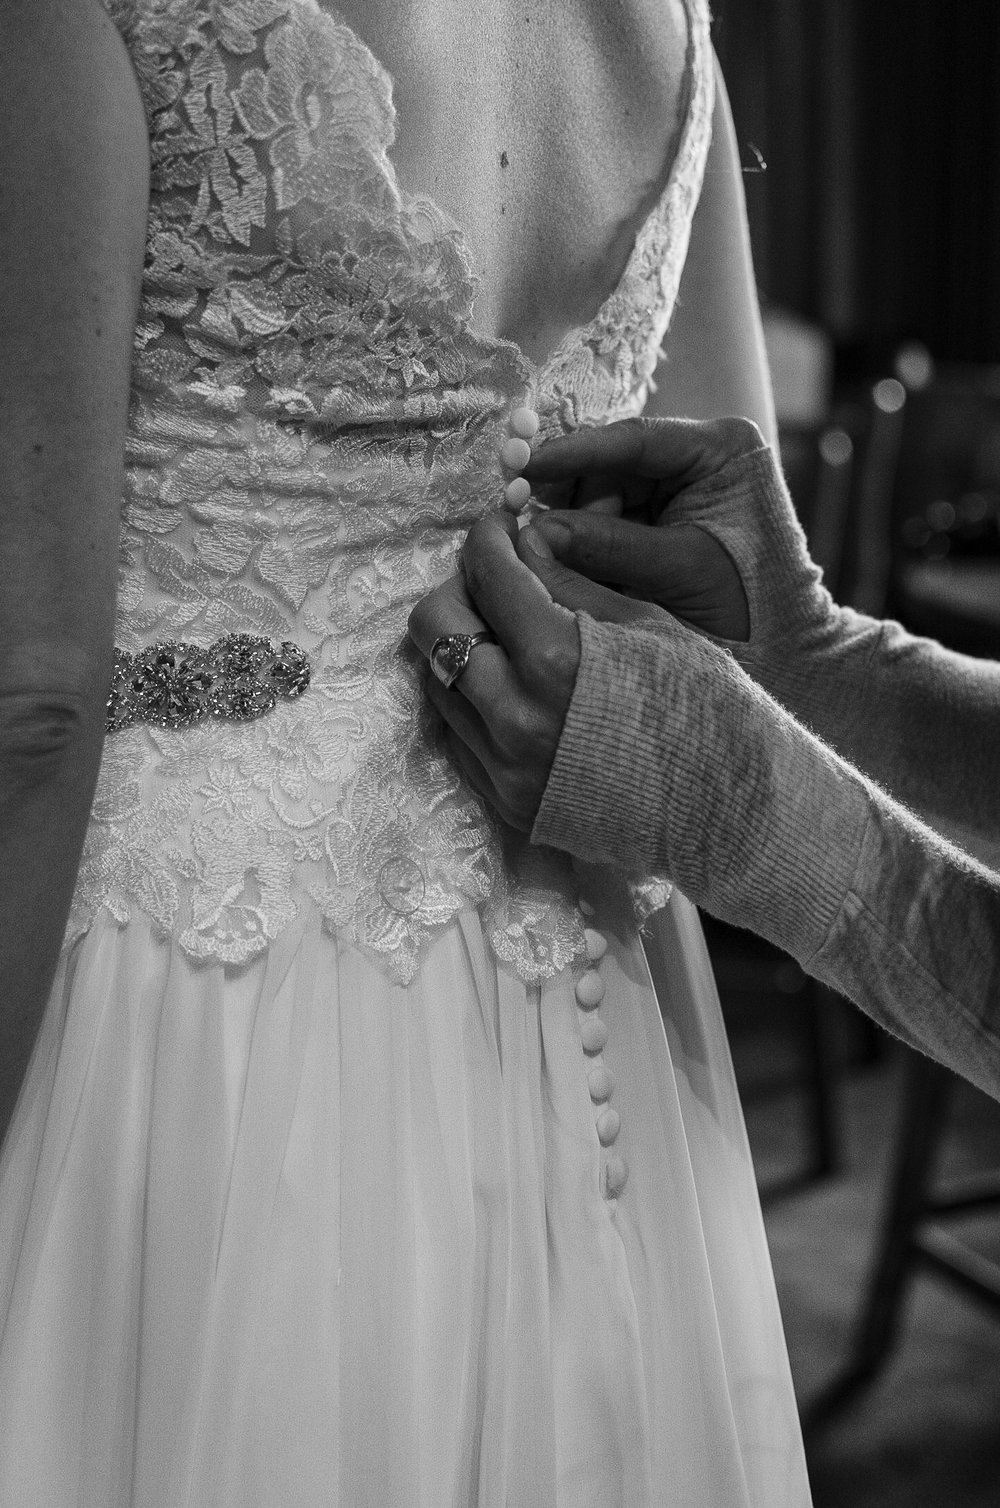 Buttoning the Wedding Dress